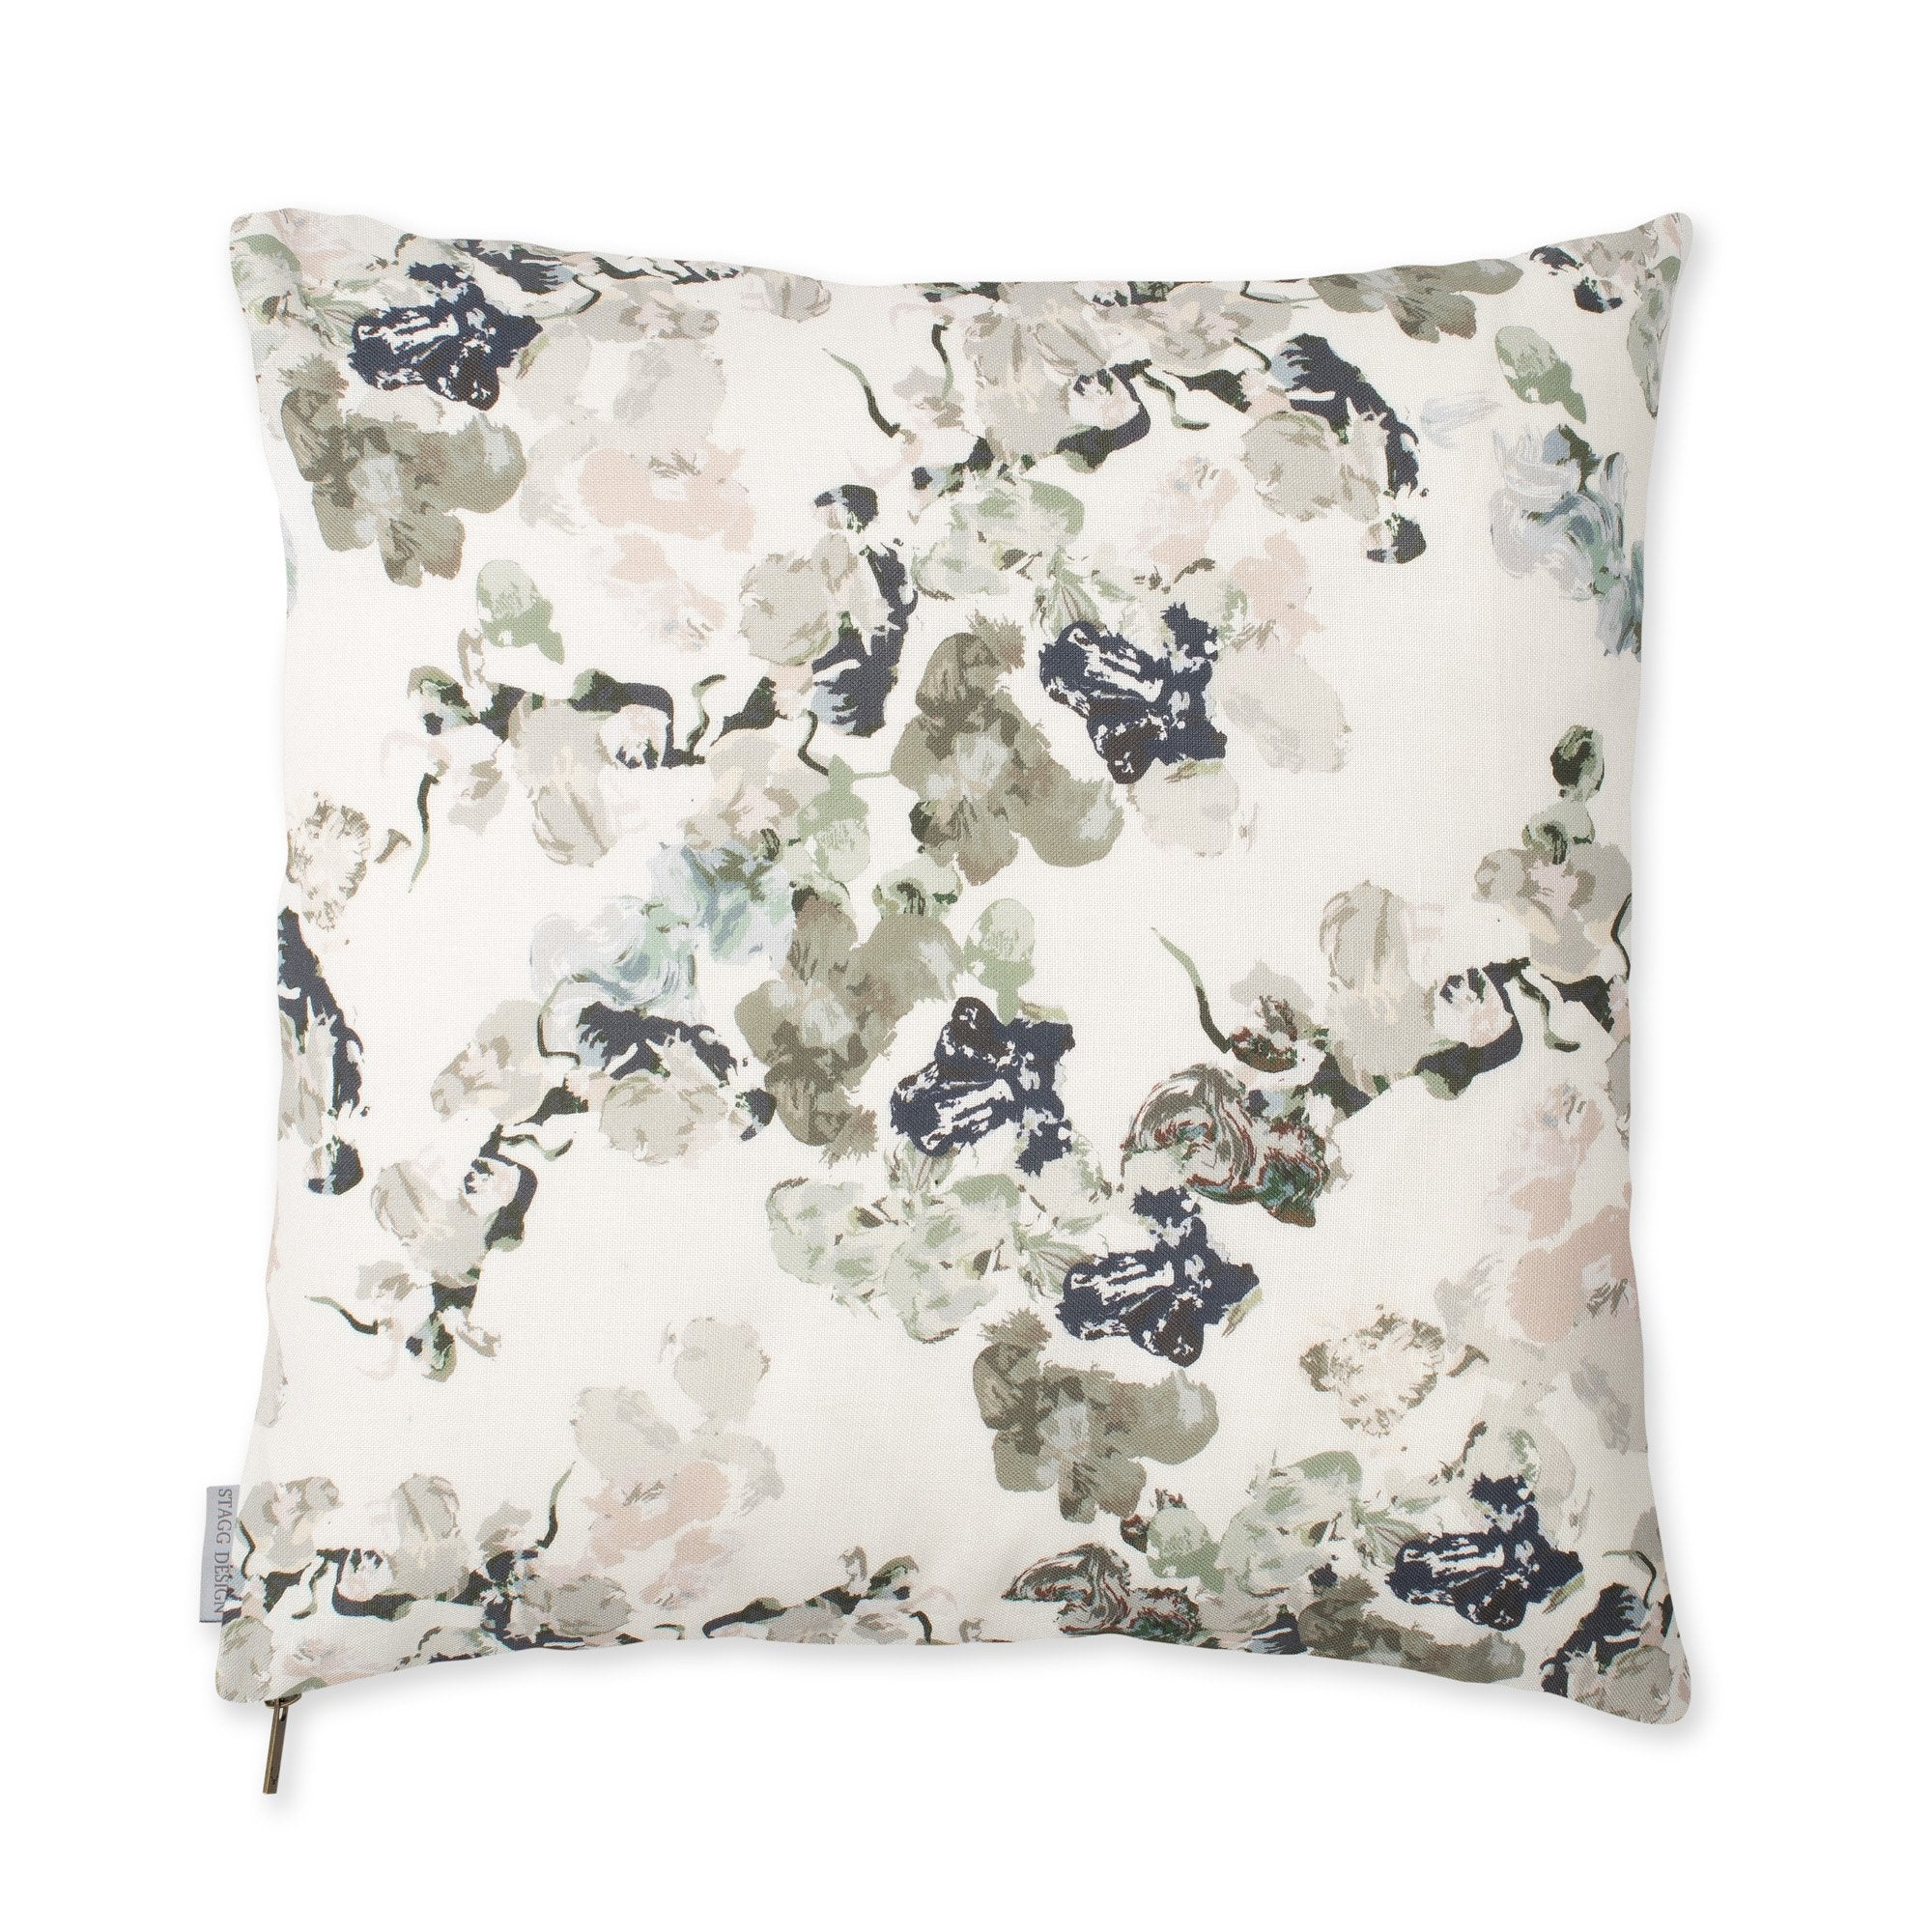 Mia Pillow Pairing (Set of 3)